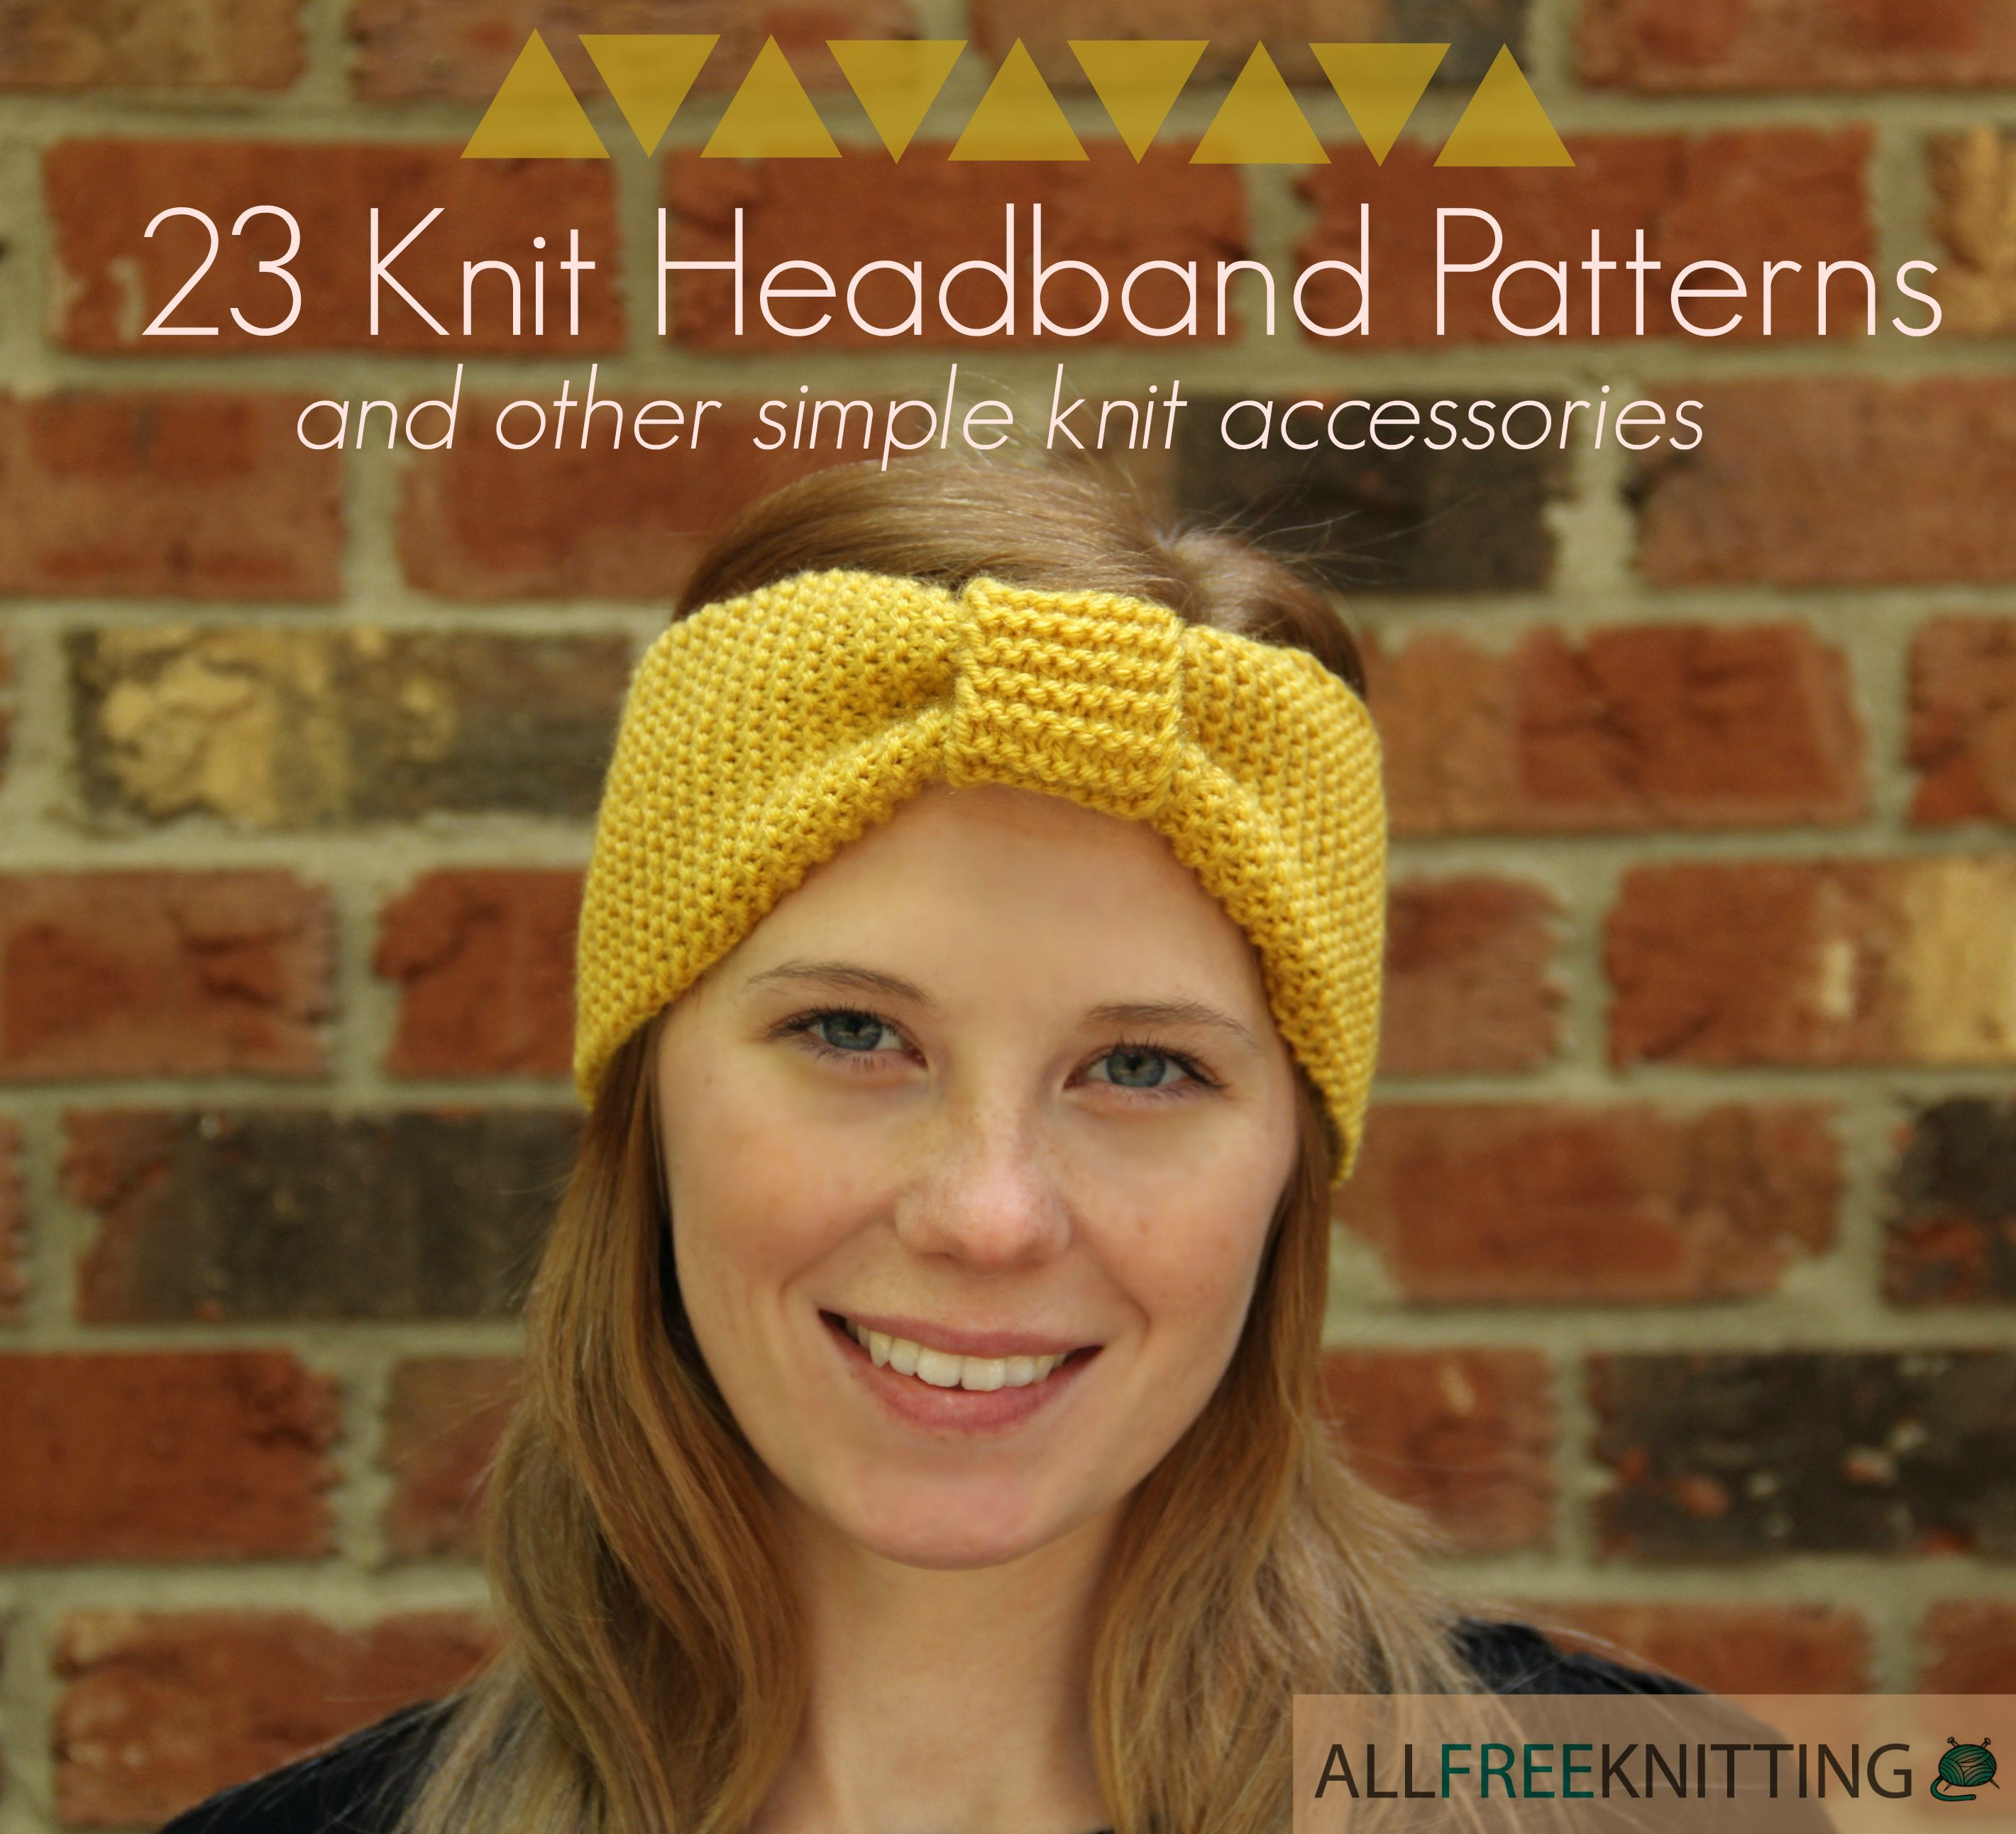 25 Knit Headband Patterns and Other Simple Knit Accessories | Knit ...